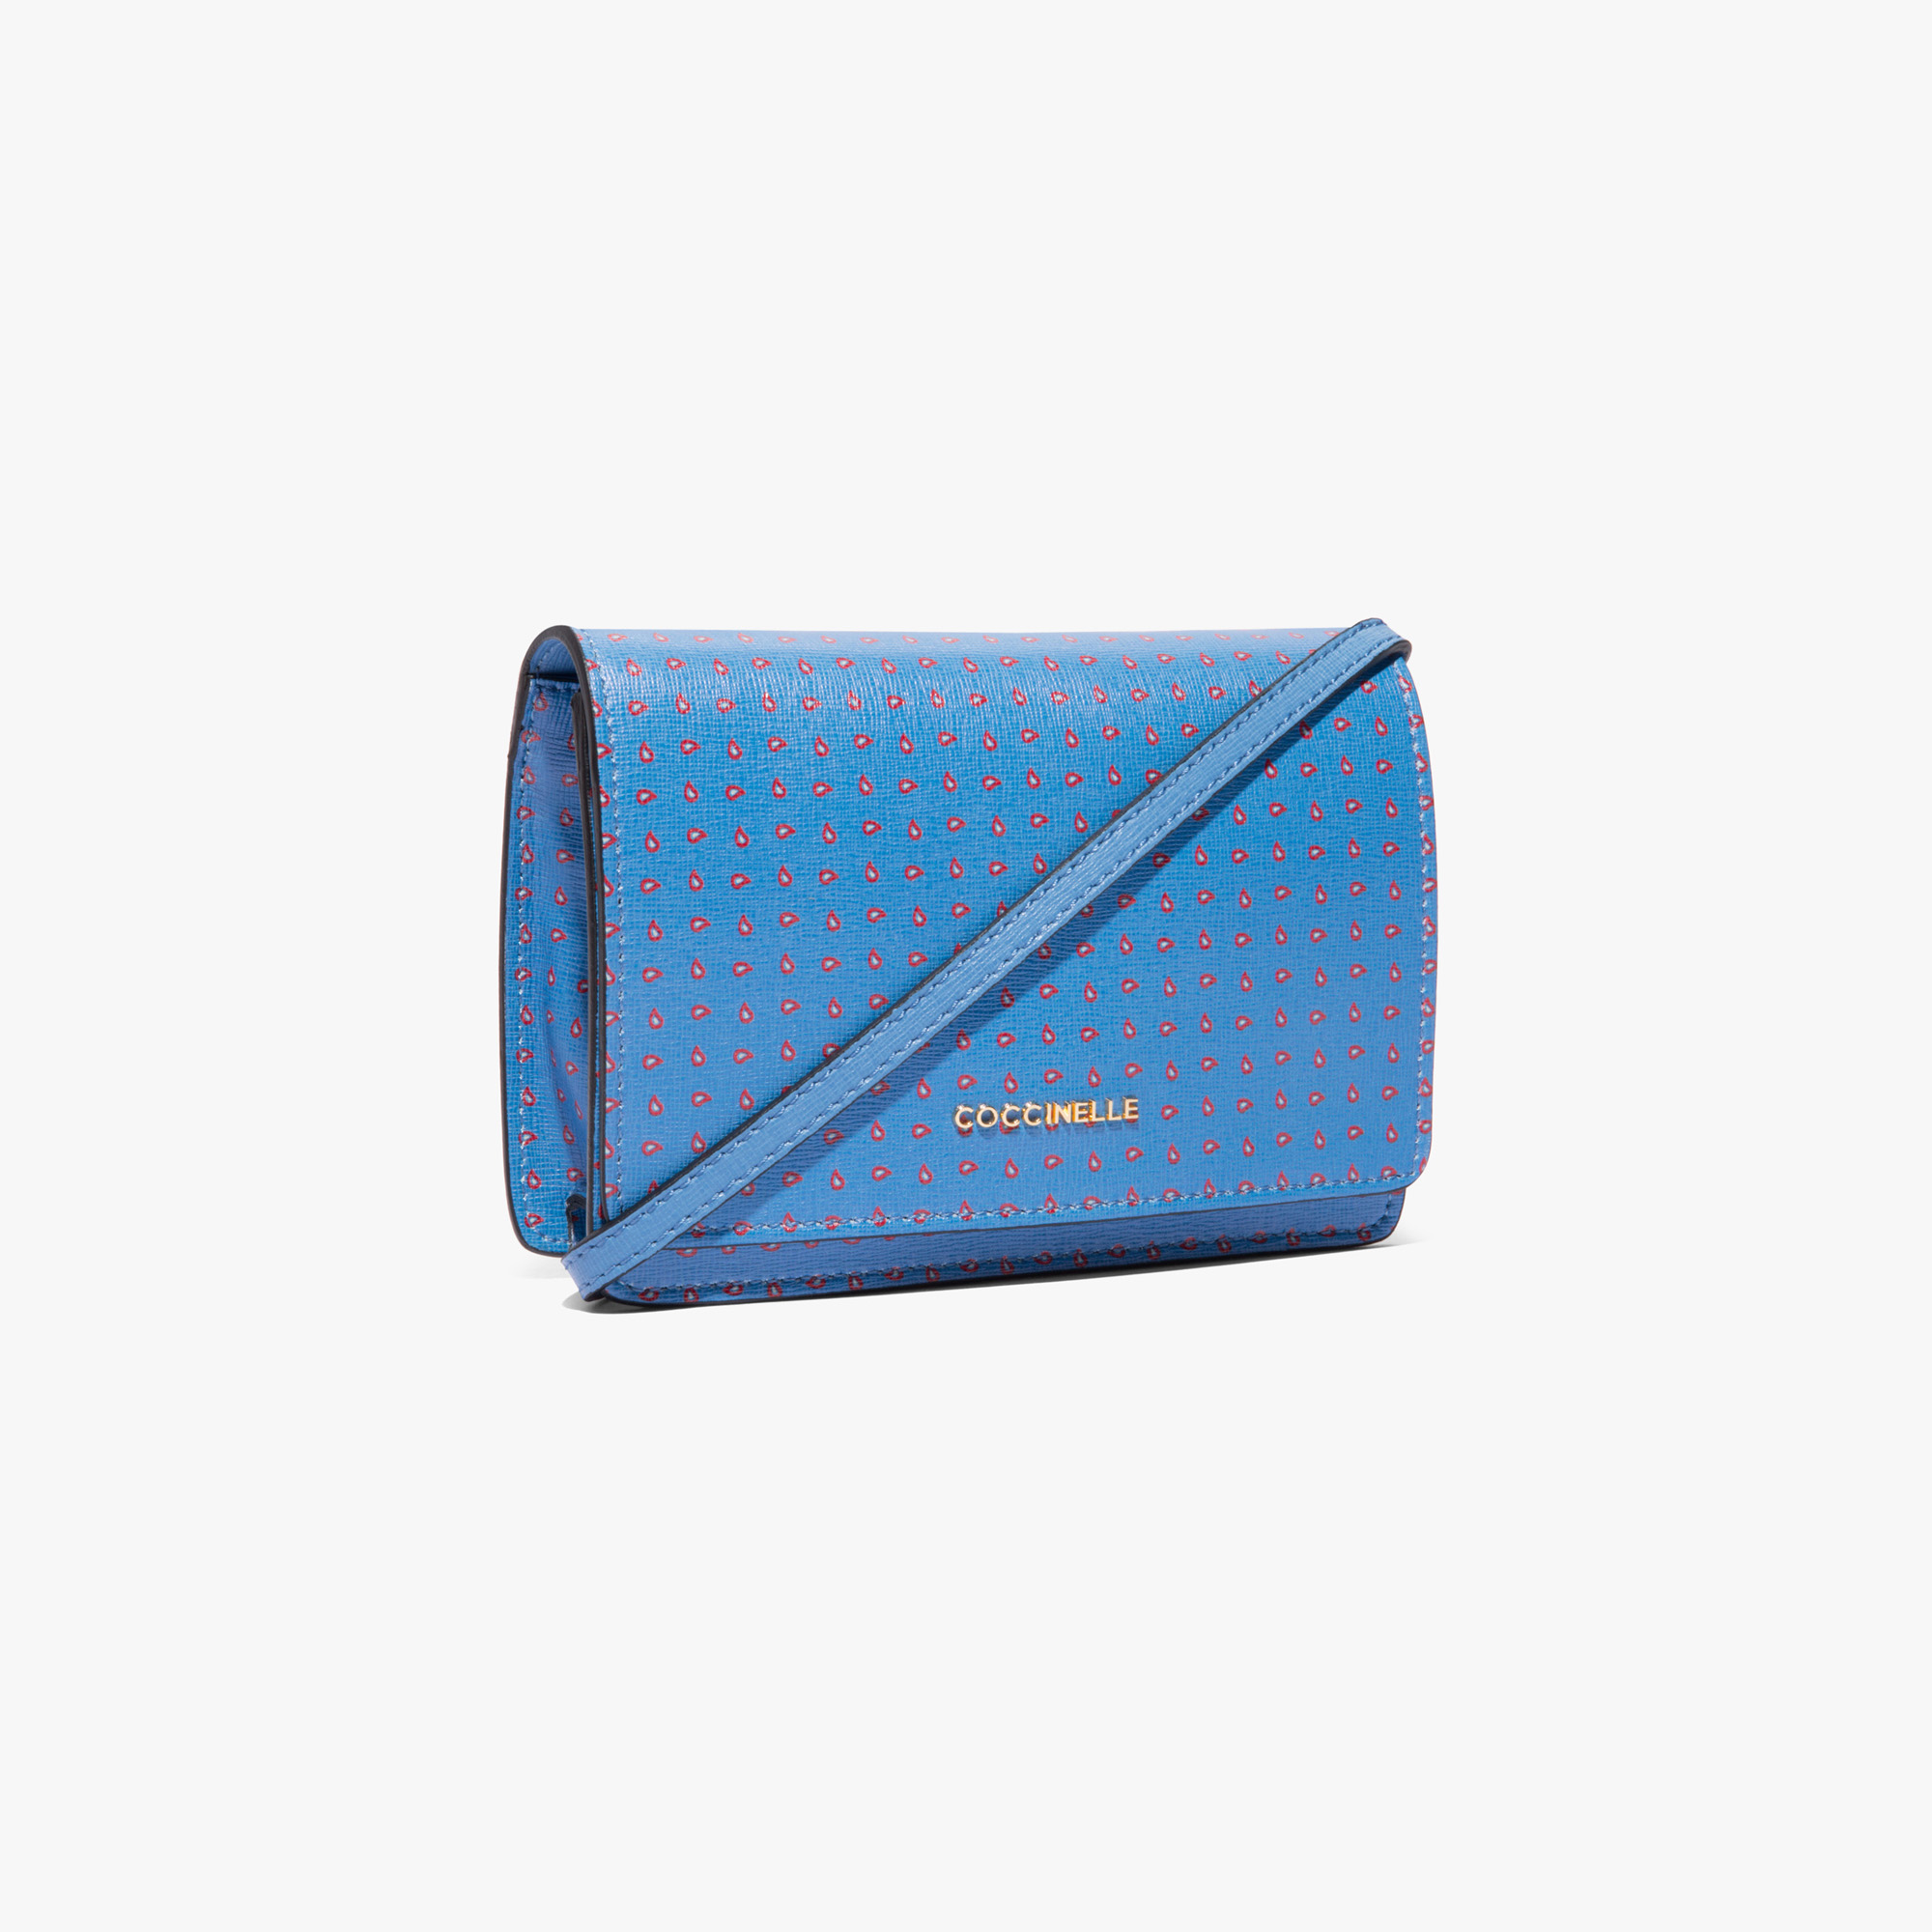 Printed saffiano leather clutch bag